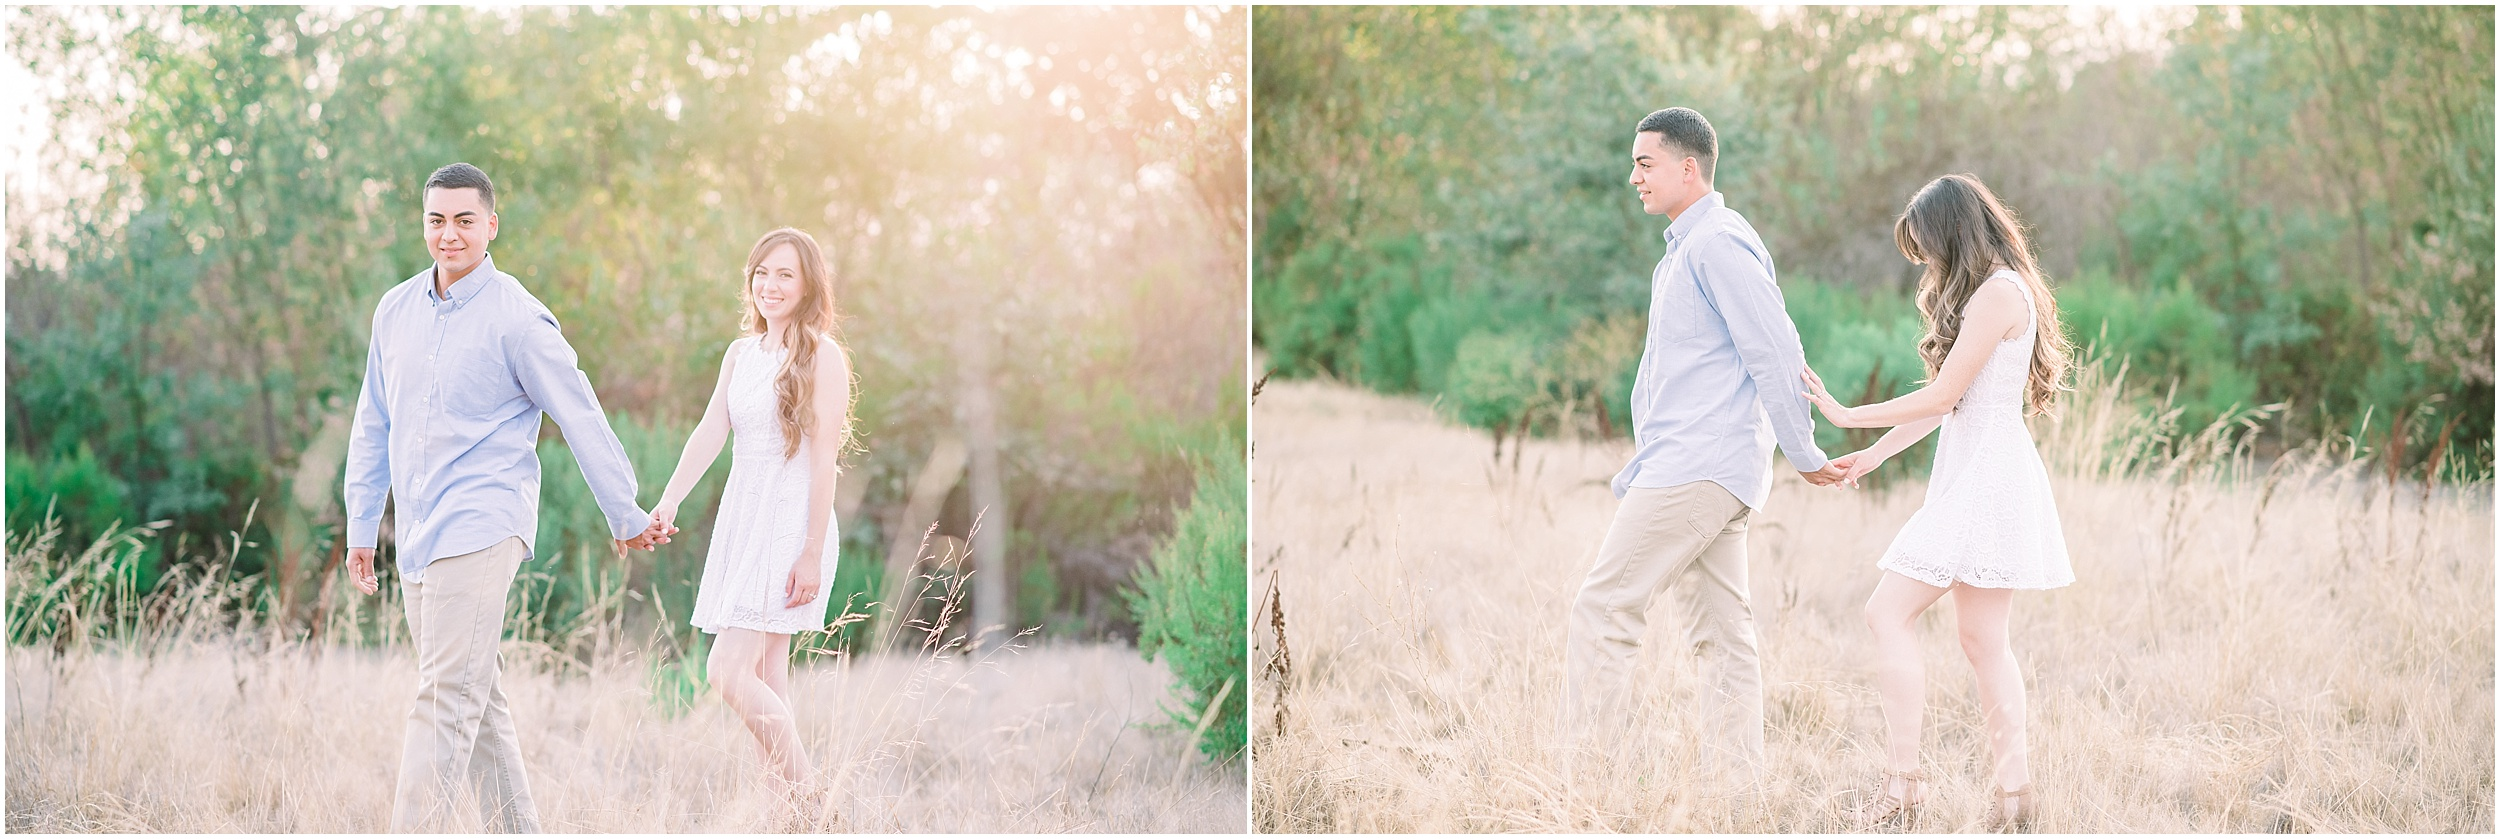 Valeria-Gonzalez-Photography-Wedding-and-Portrait-Photographer-Richmond-Virginia-Engagement-Session-in-Ojai-California_0017.jpg